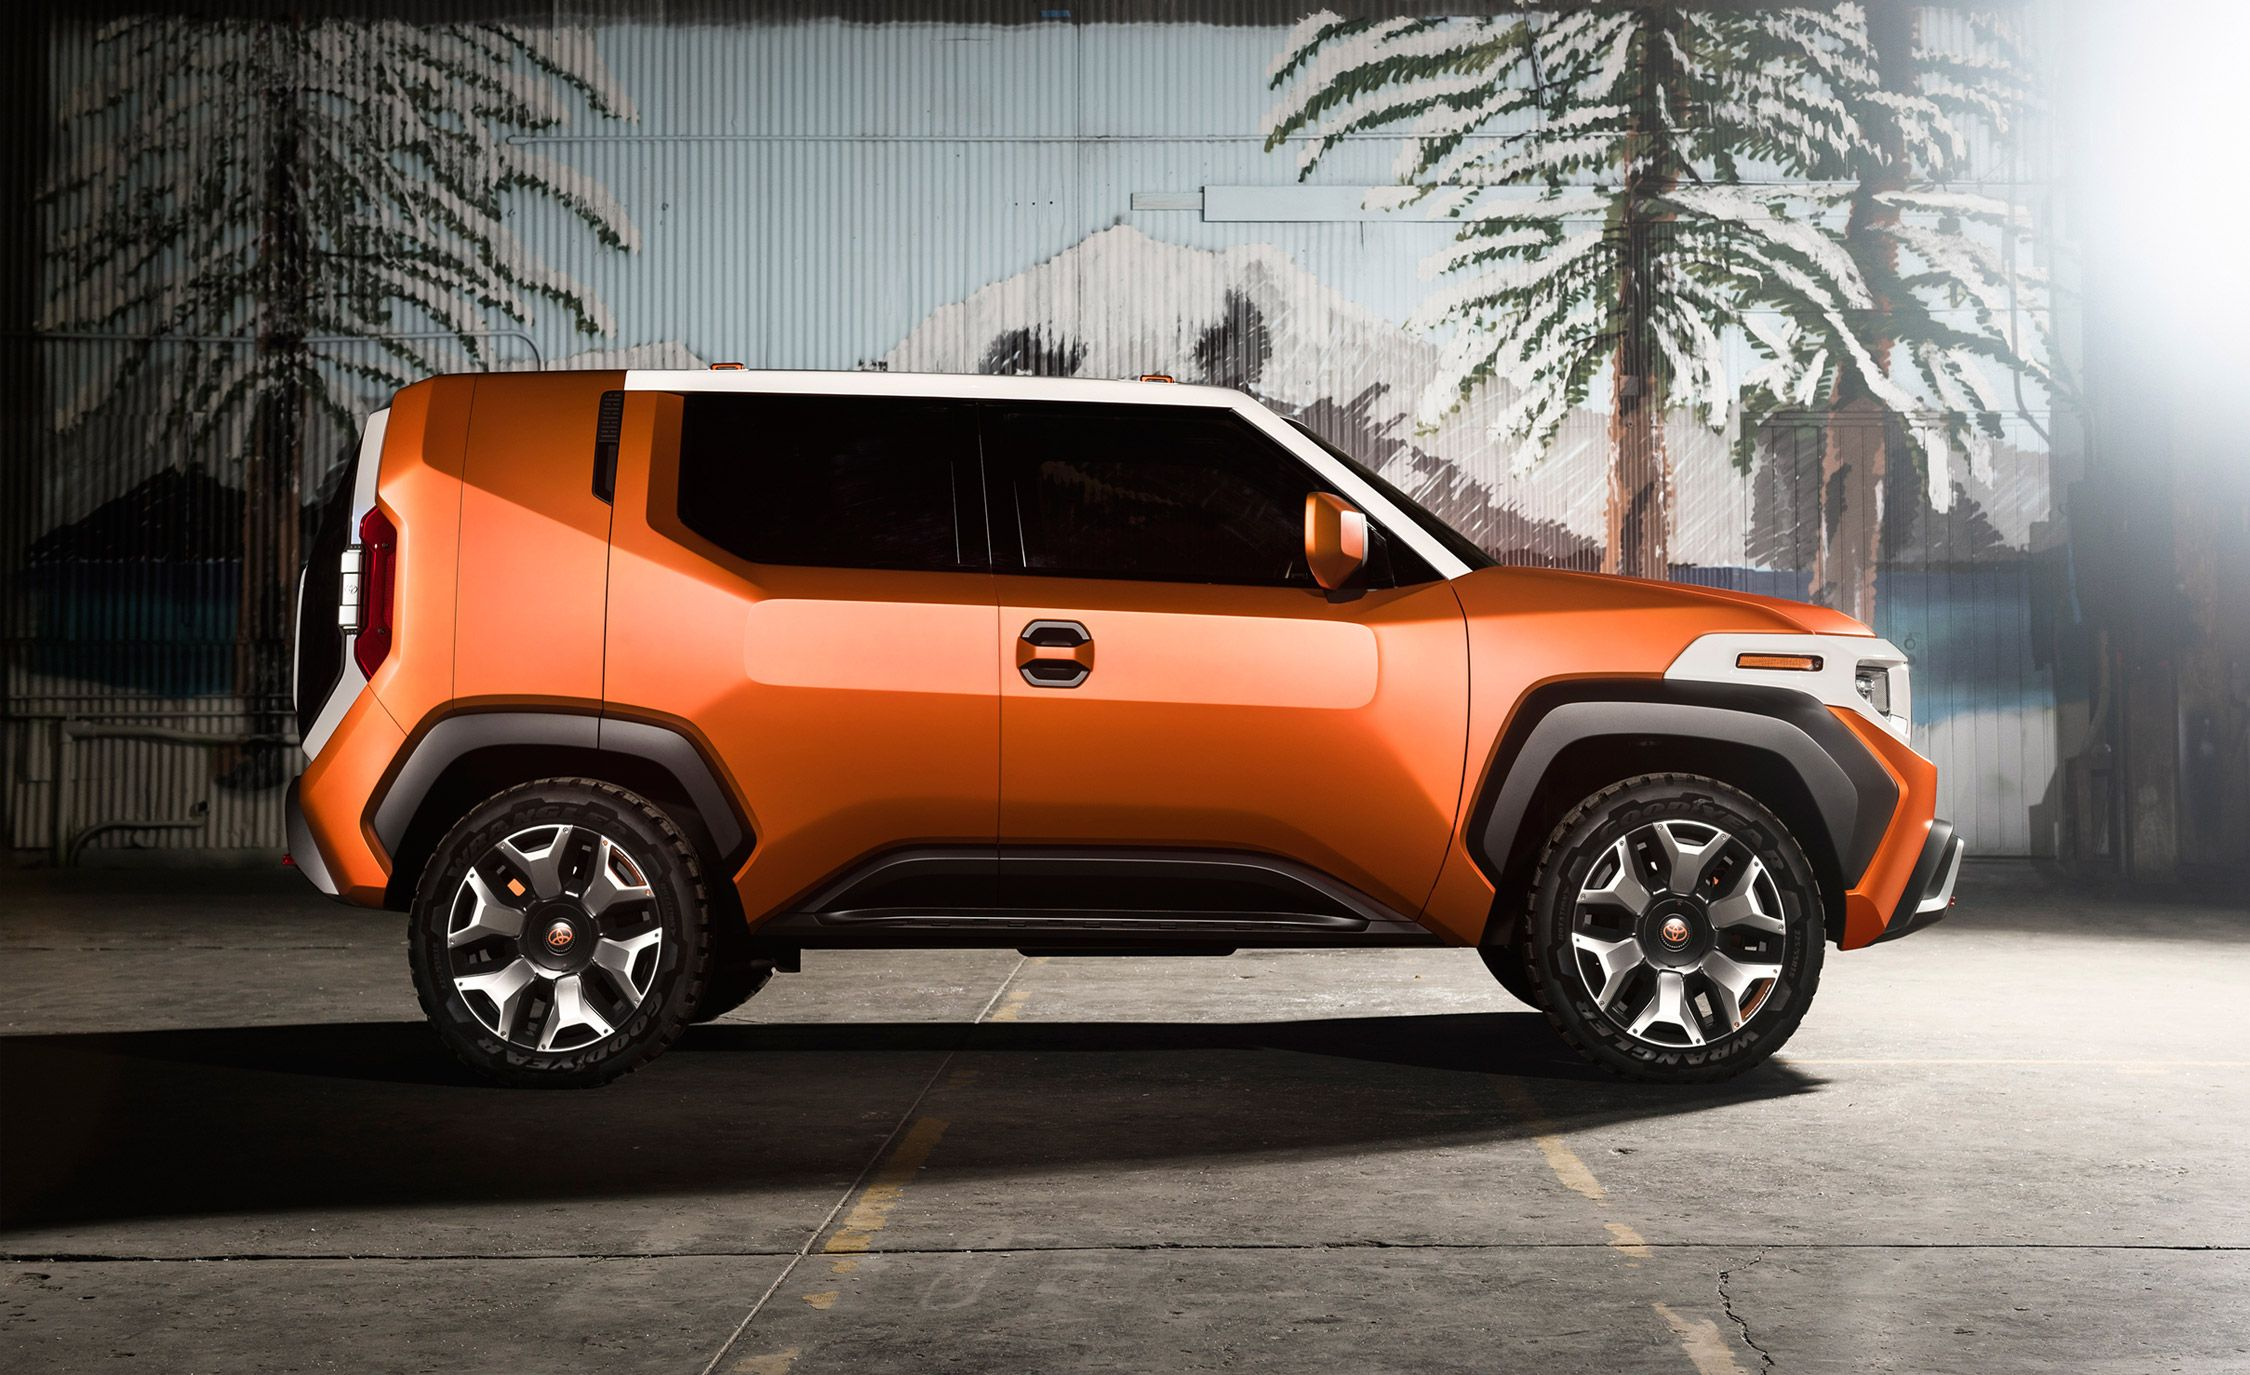 2020 Toyota FT-4X: A Funky, Cool, Boxy SUV | 25 Cars Worth ...